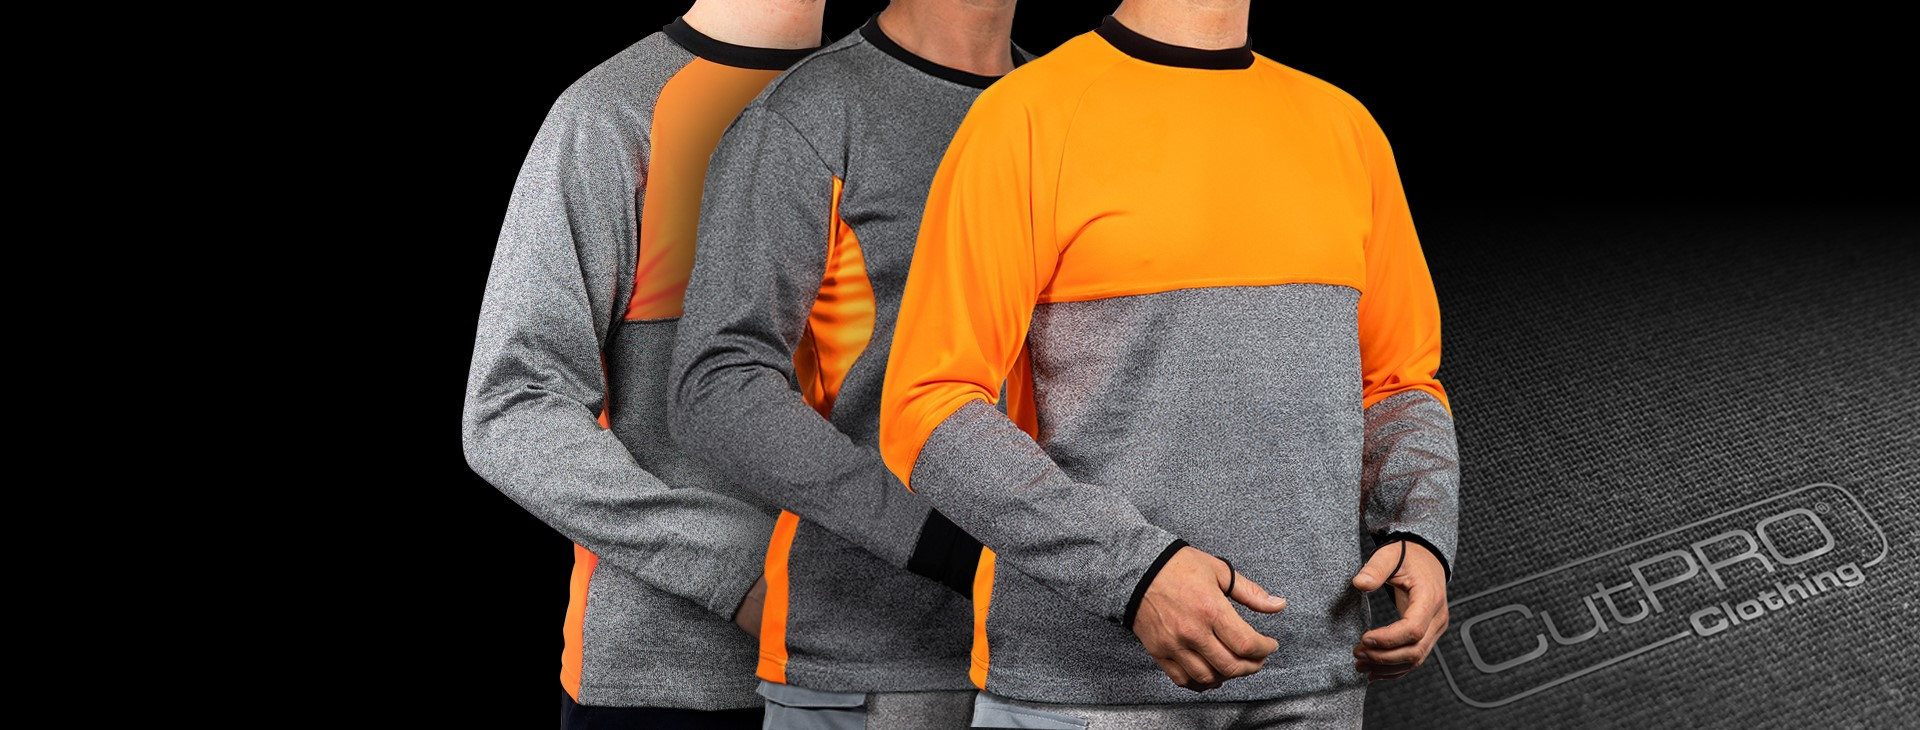 CutPRO Cut Resistant Clothing - new image